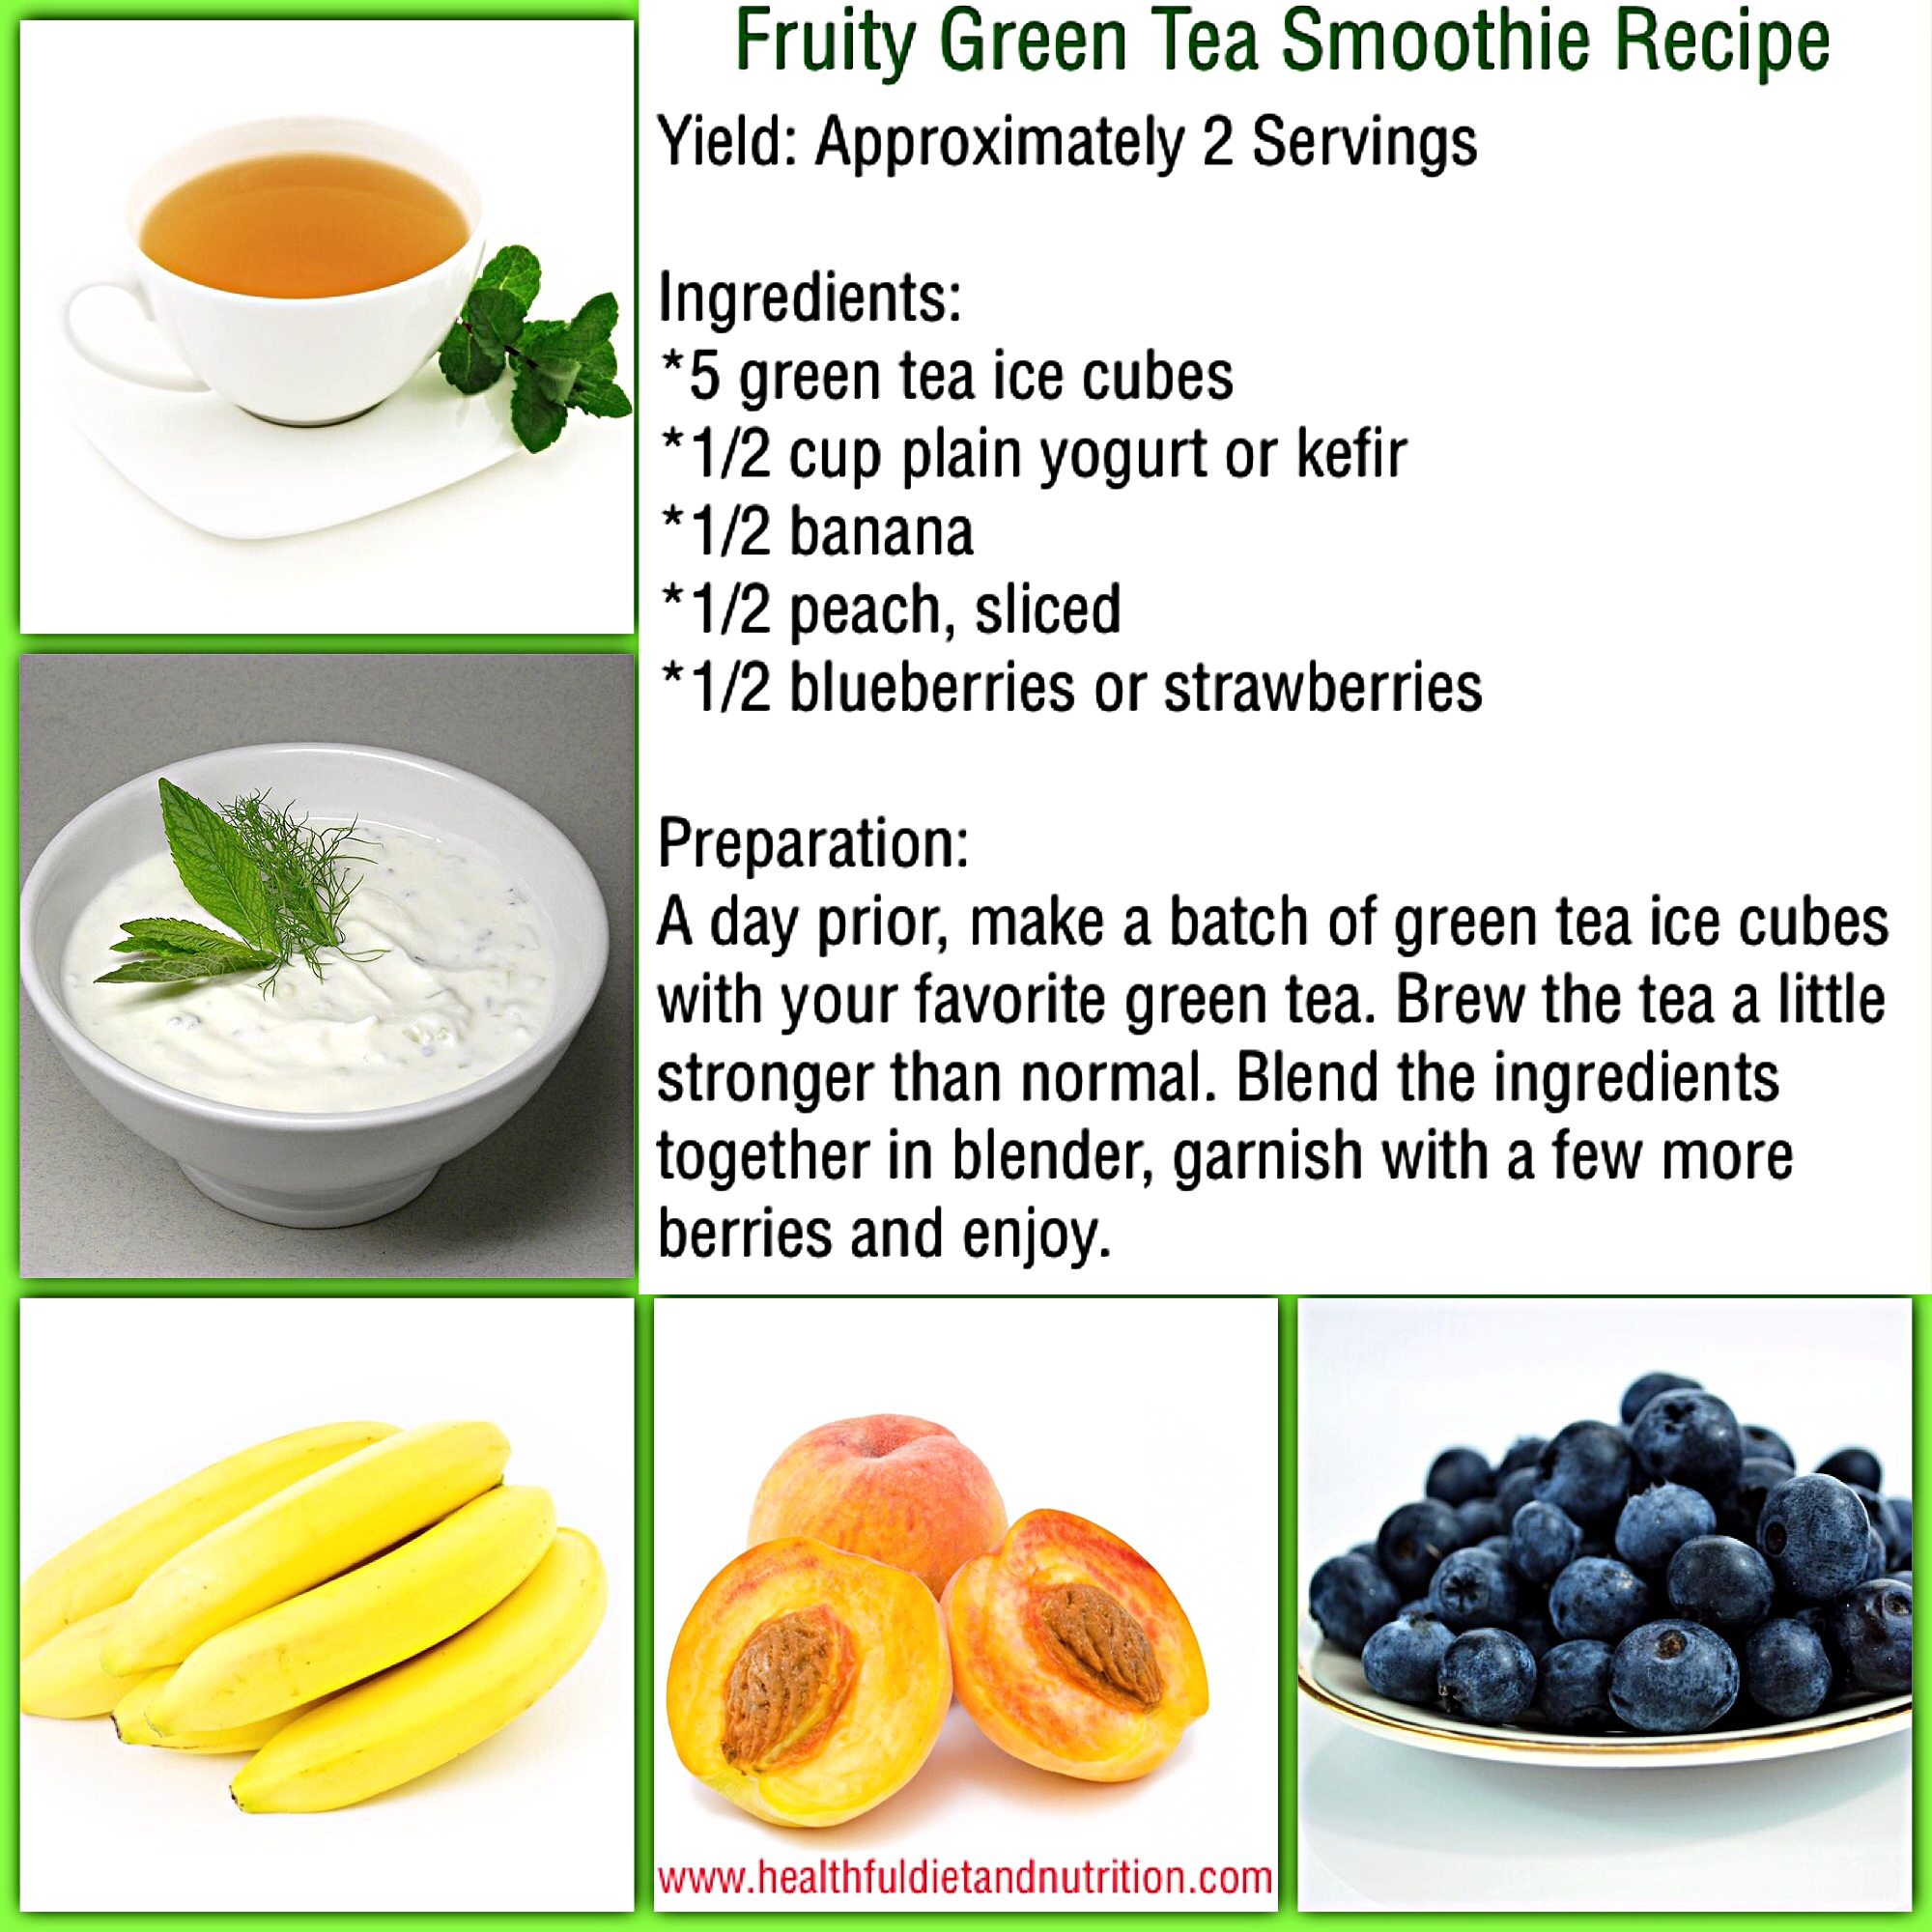 Fruity Green Tea Smoothie